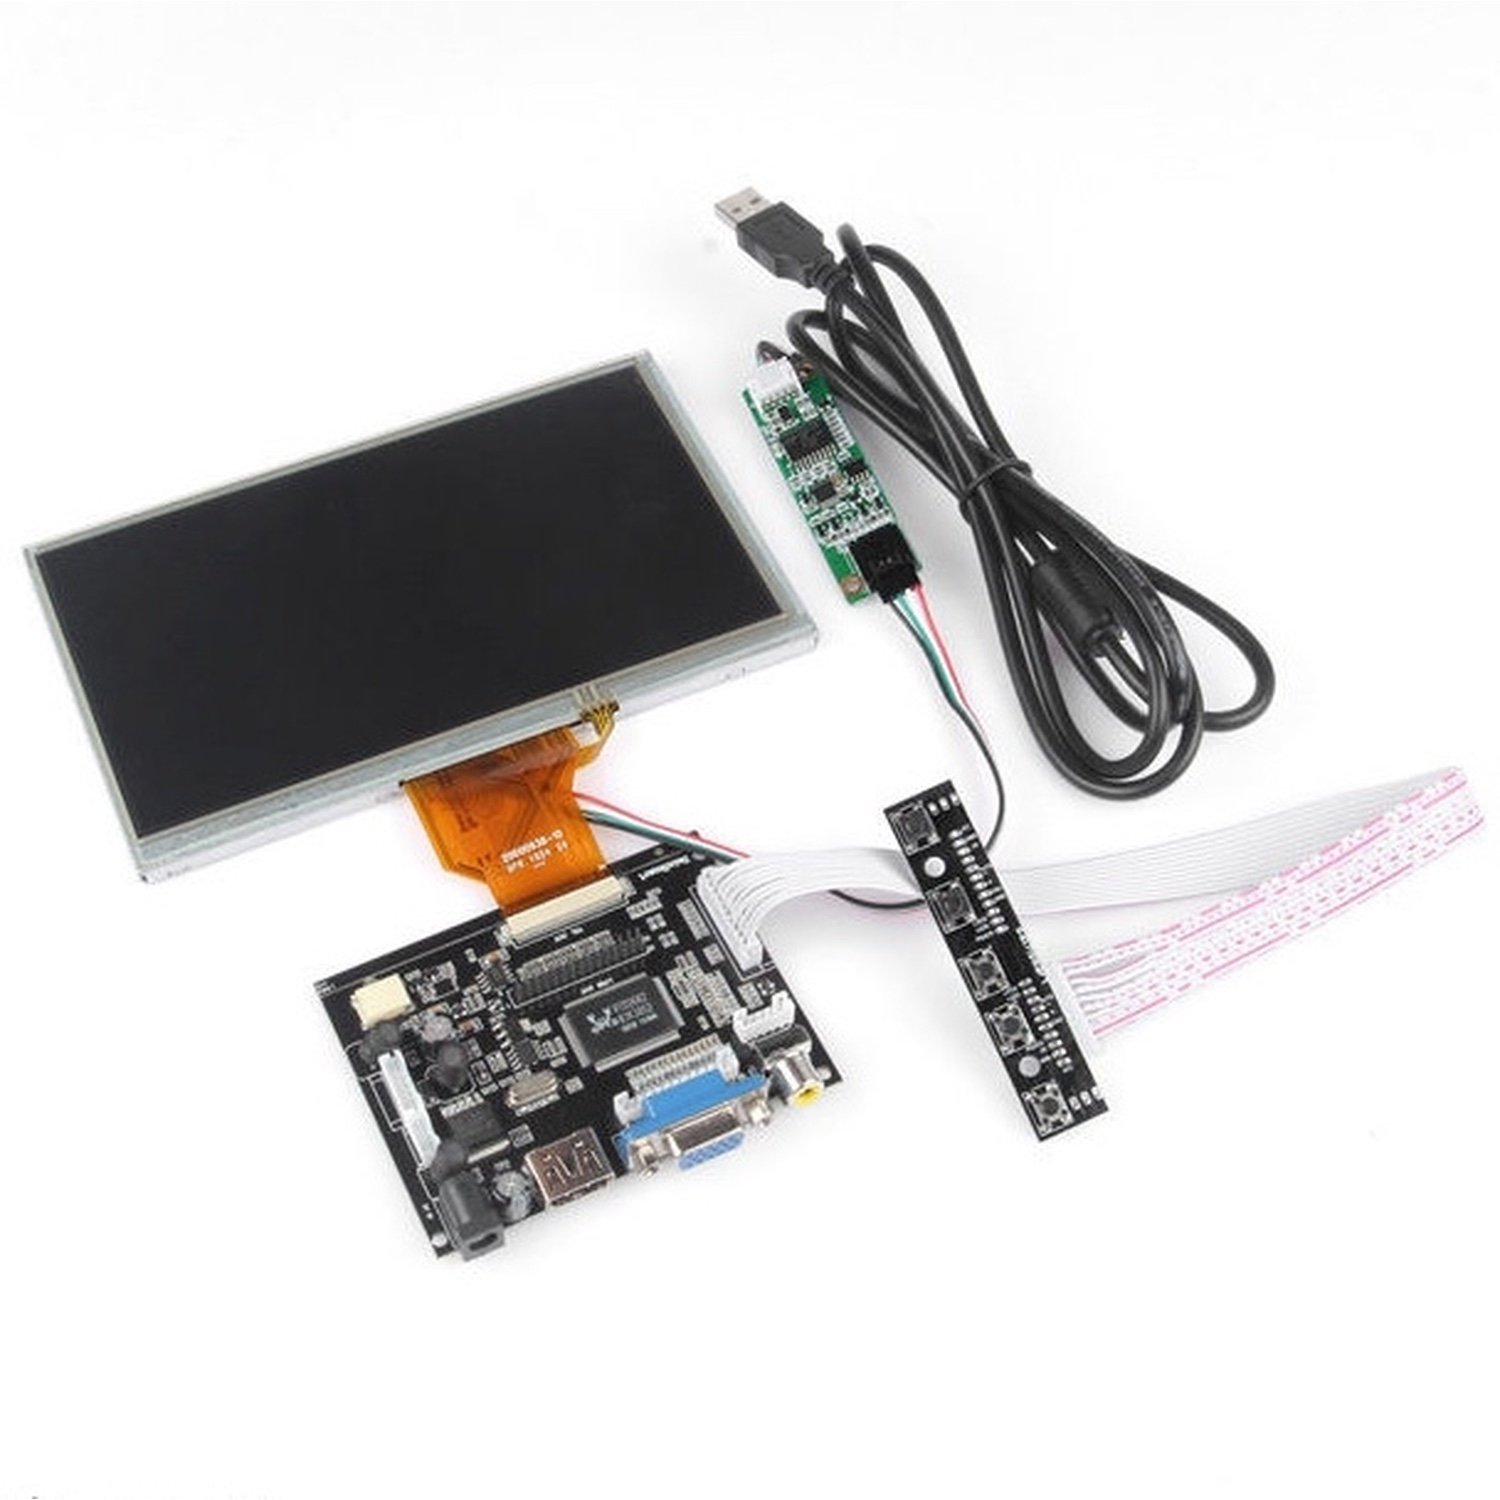 7 Inch TFT LCD Display For Raspberry Pi Touch Screen + Driver Board HDMI VGA 2AV 4 3 lcd screen 2av vga driver board at043tn24 34 7m 40pin lcd screen